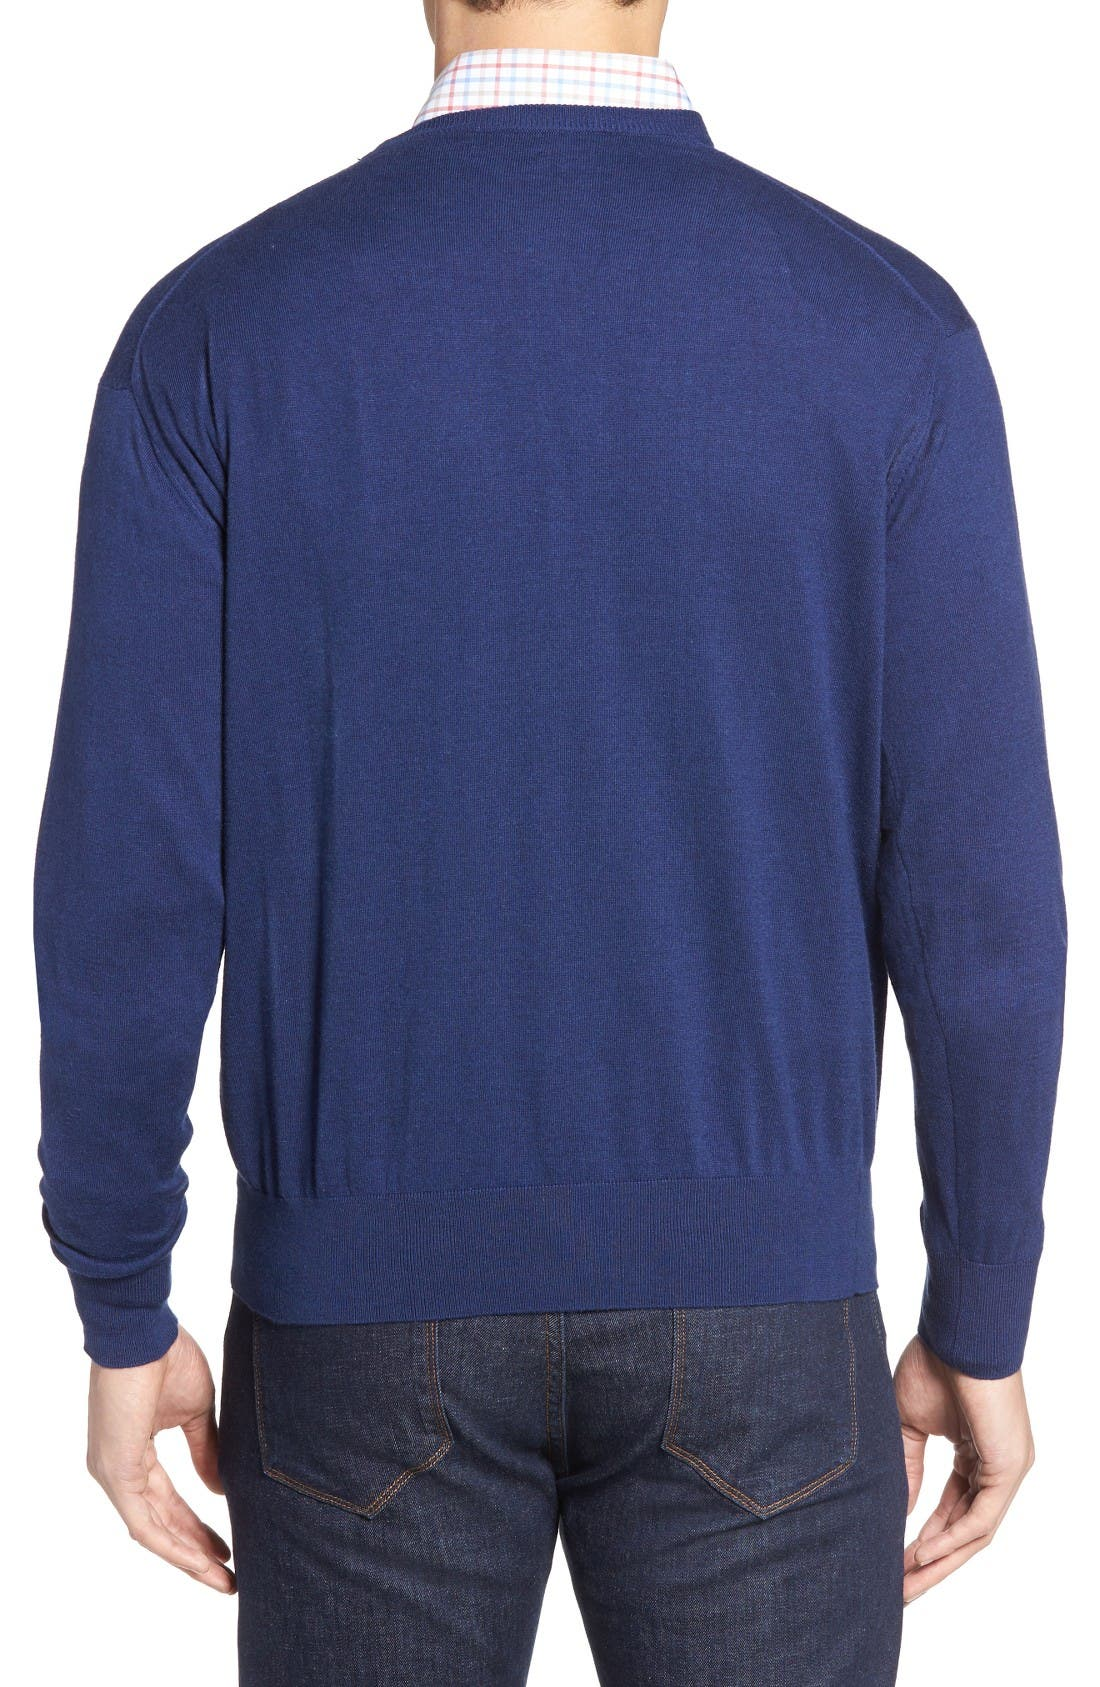 Alternate Image 2  - Peter Millar Crown Sweatshirt